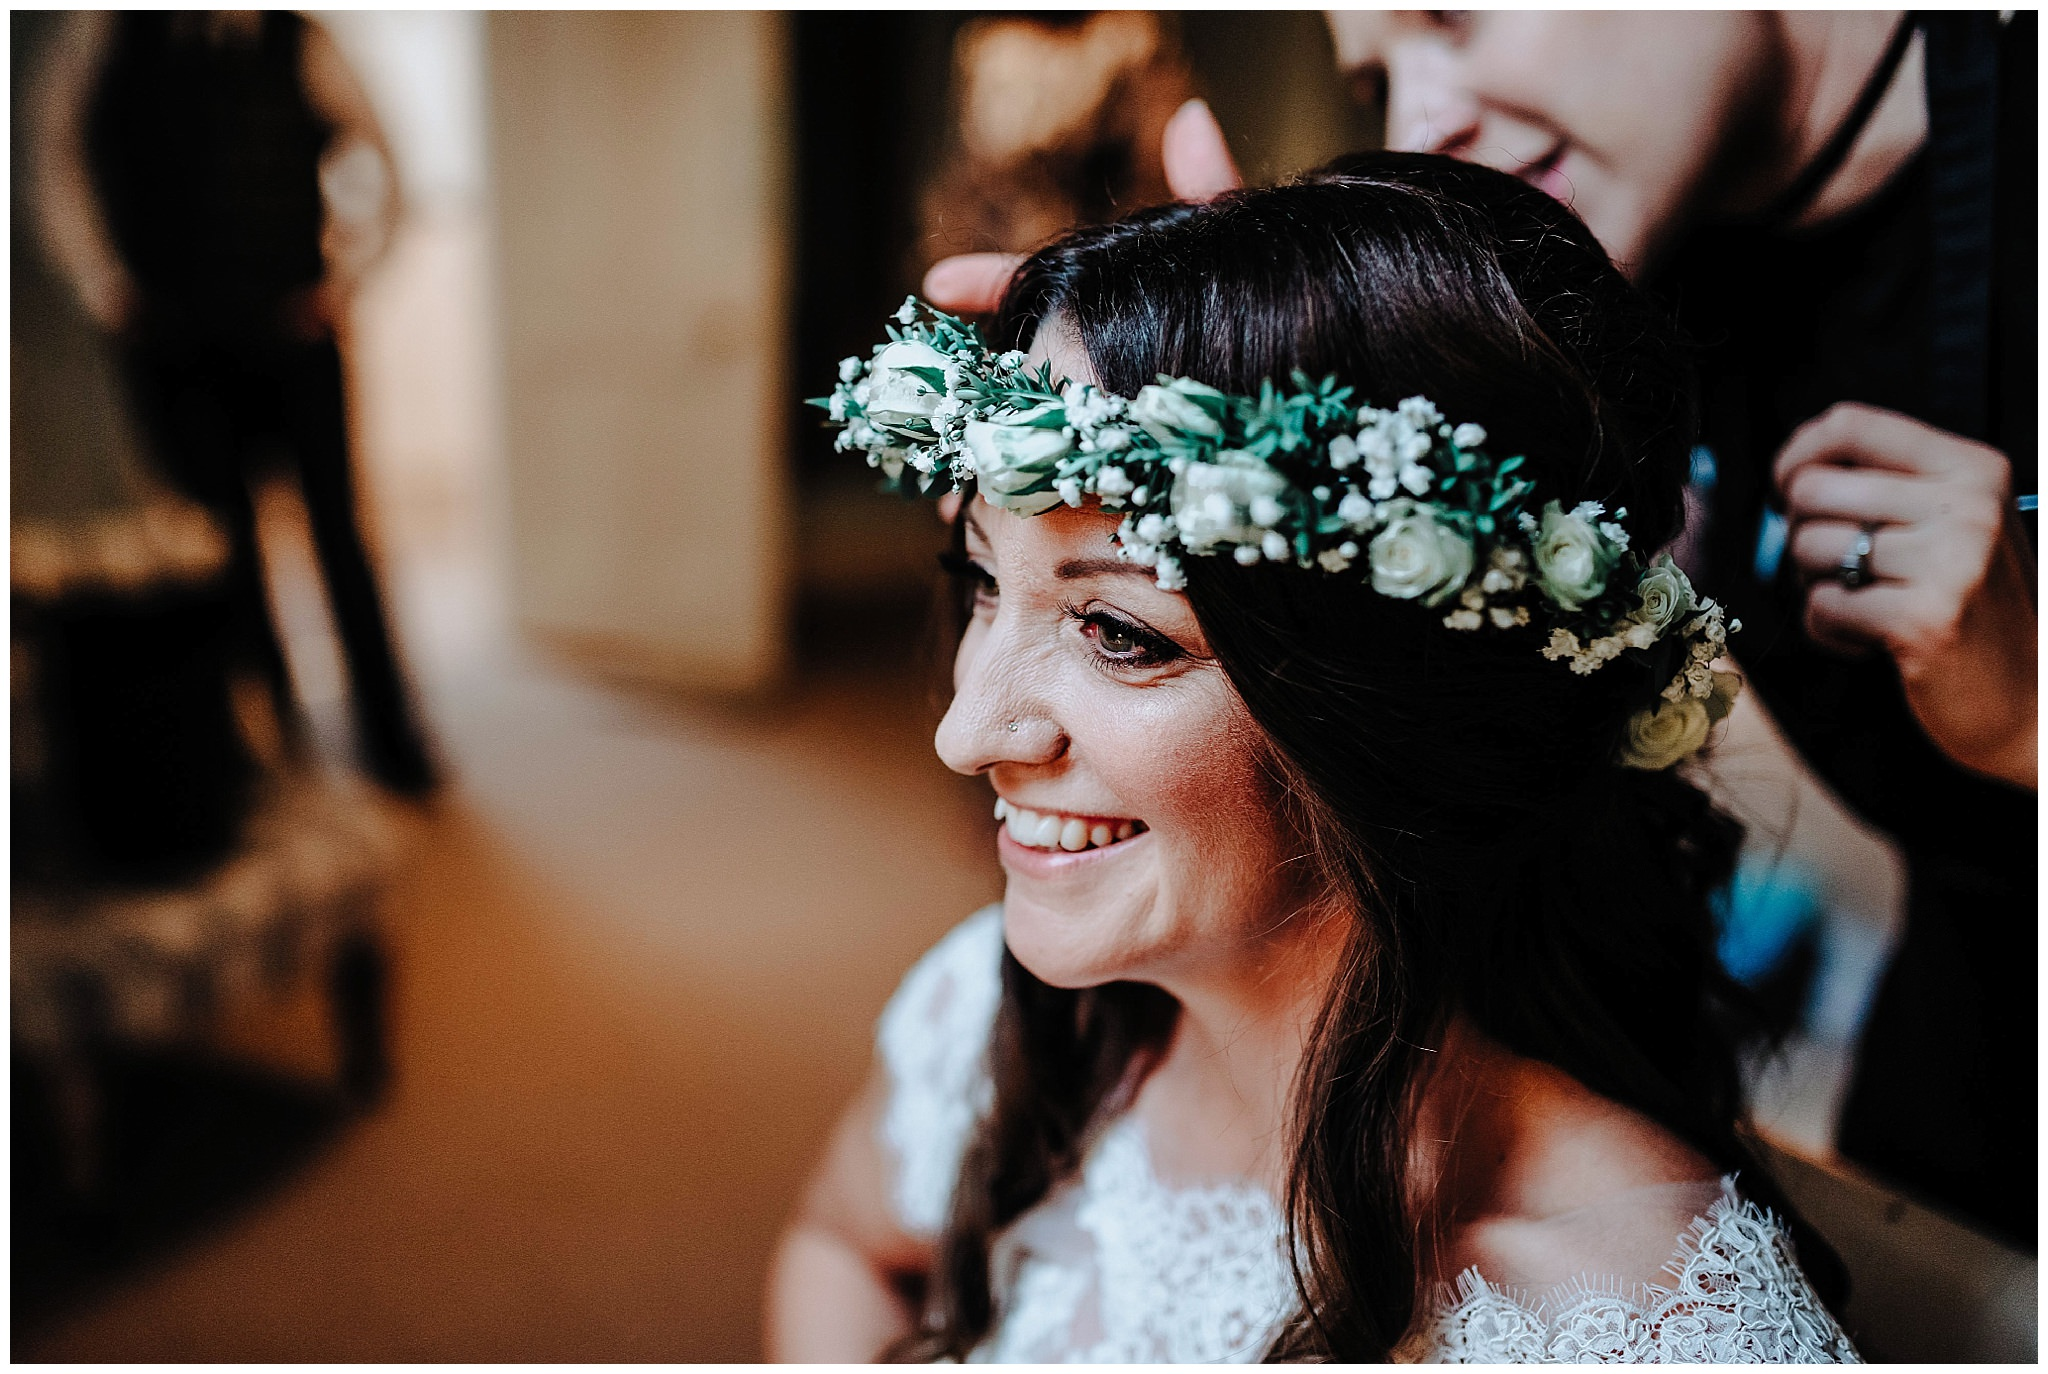 Bride smiling with her flower crown on